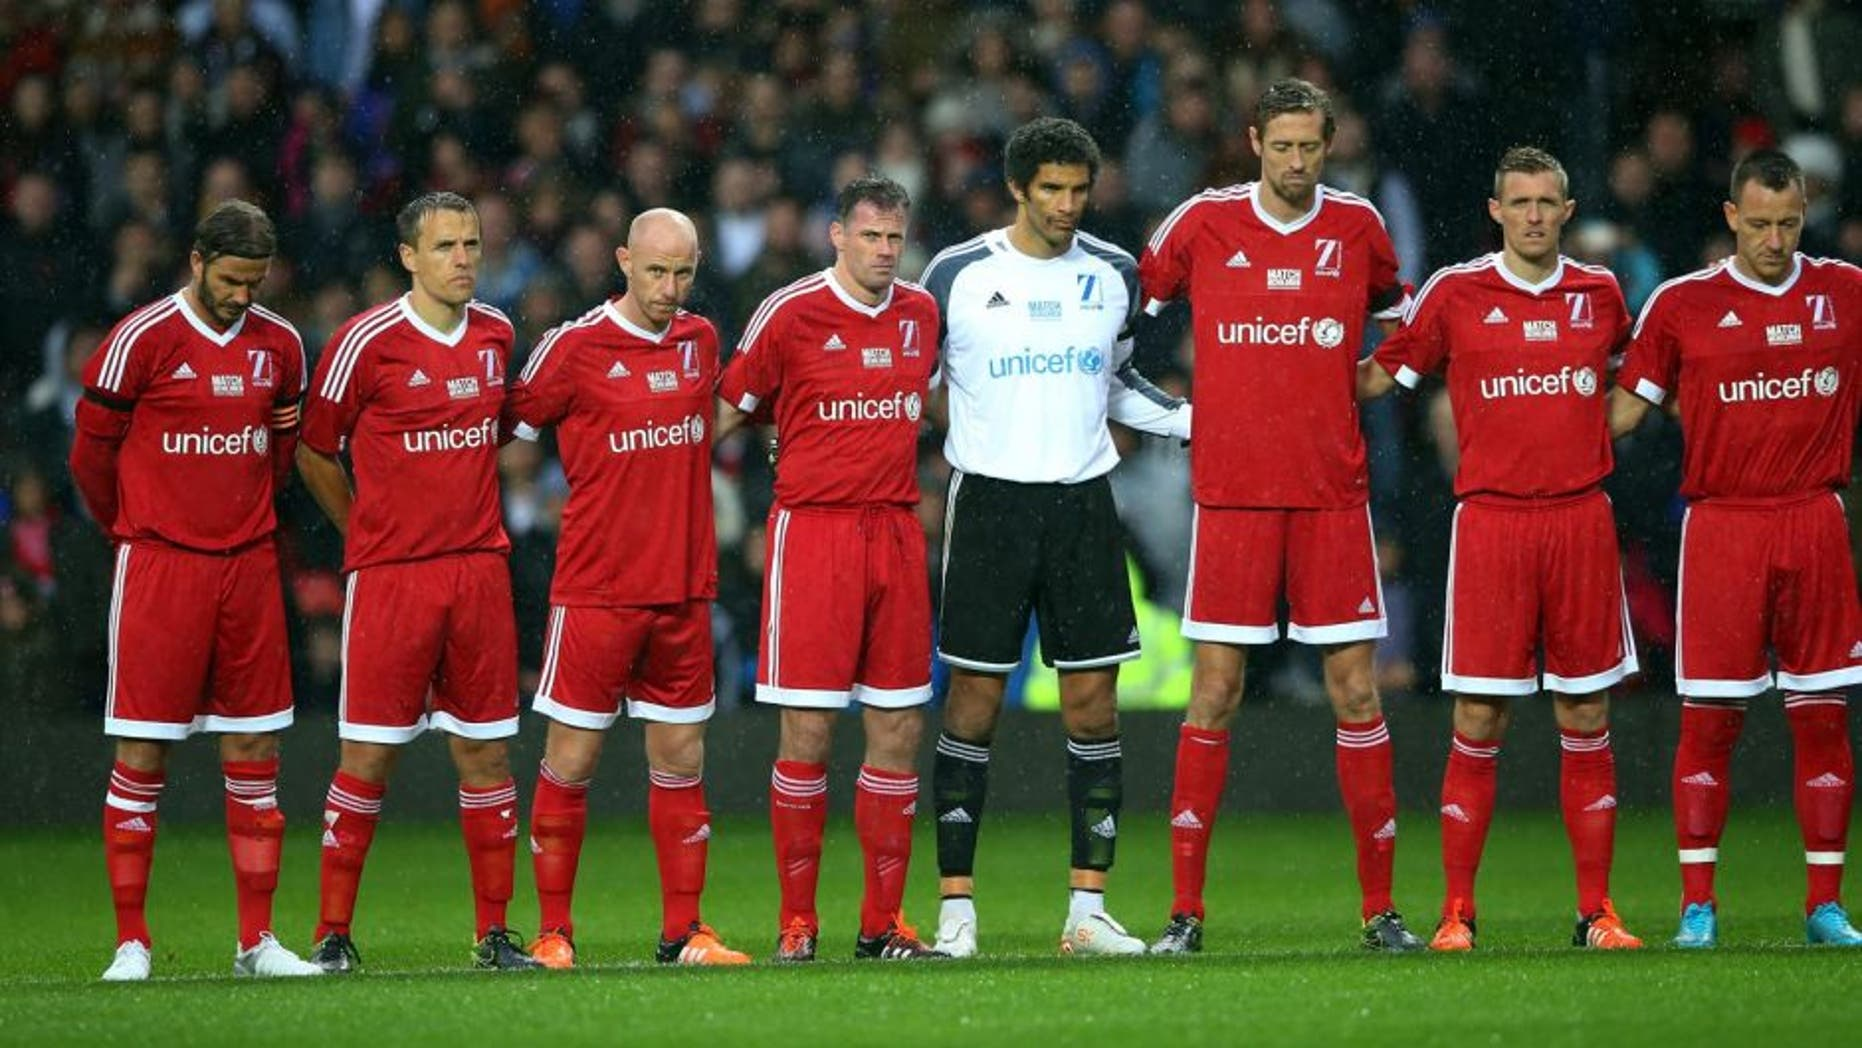 MANCHESTER, ENGLAND - NOVEMBER 14: The Great Britain & Ireland team observe a silence, in remembrance to the victims of the previous day's terror attacks in Paris, prior to kickoff during the David Beckham Match for Children in aid of UNICEF between Great Britain & Ireland and Rest of the World at Old Trafford on November 14, 2015 in Manchester, England. (Photo by Alex Livesey/Getty Images)